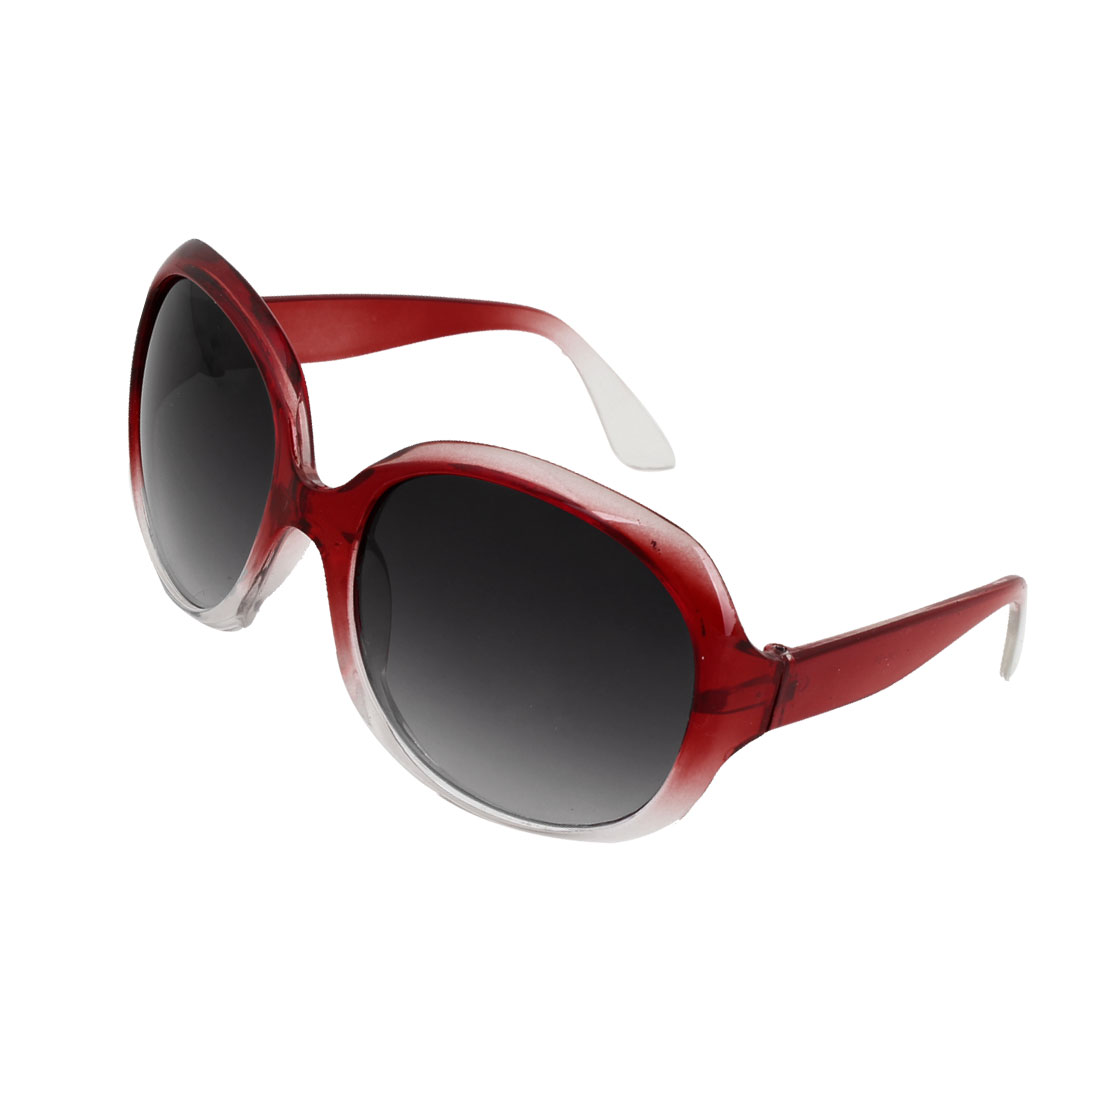 Oversized Round Shape Gradient Lens Red Clear Rimmed Sunglasses for Unisex